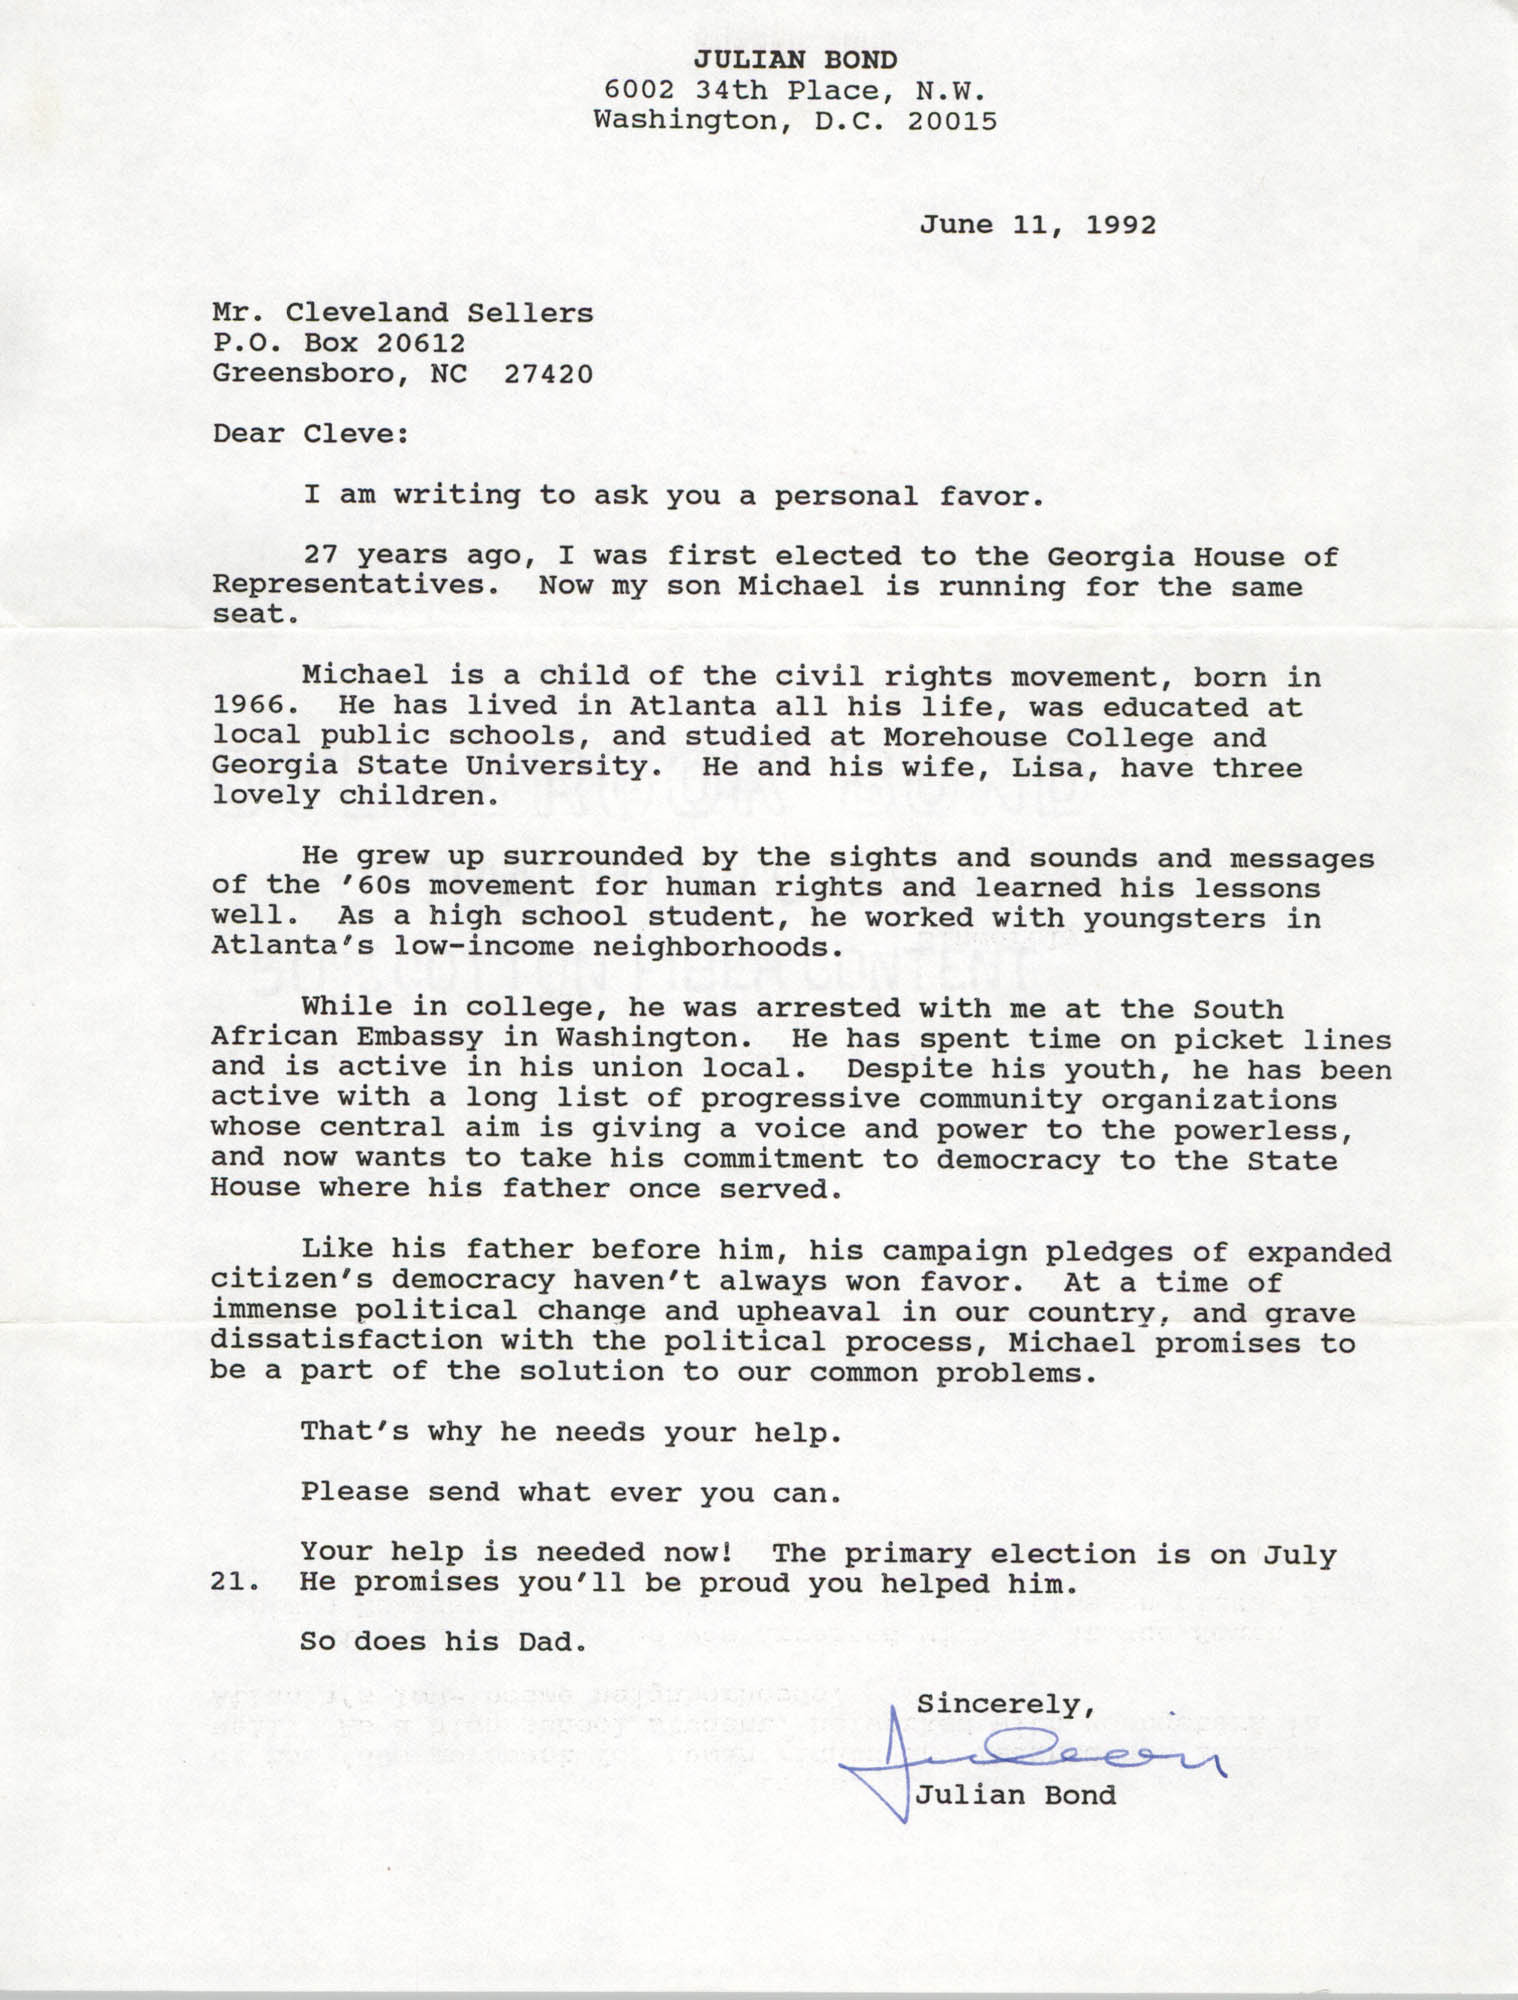 Letter from Julian Bond to Cleveland Sellers, June 11, 1992